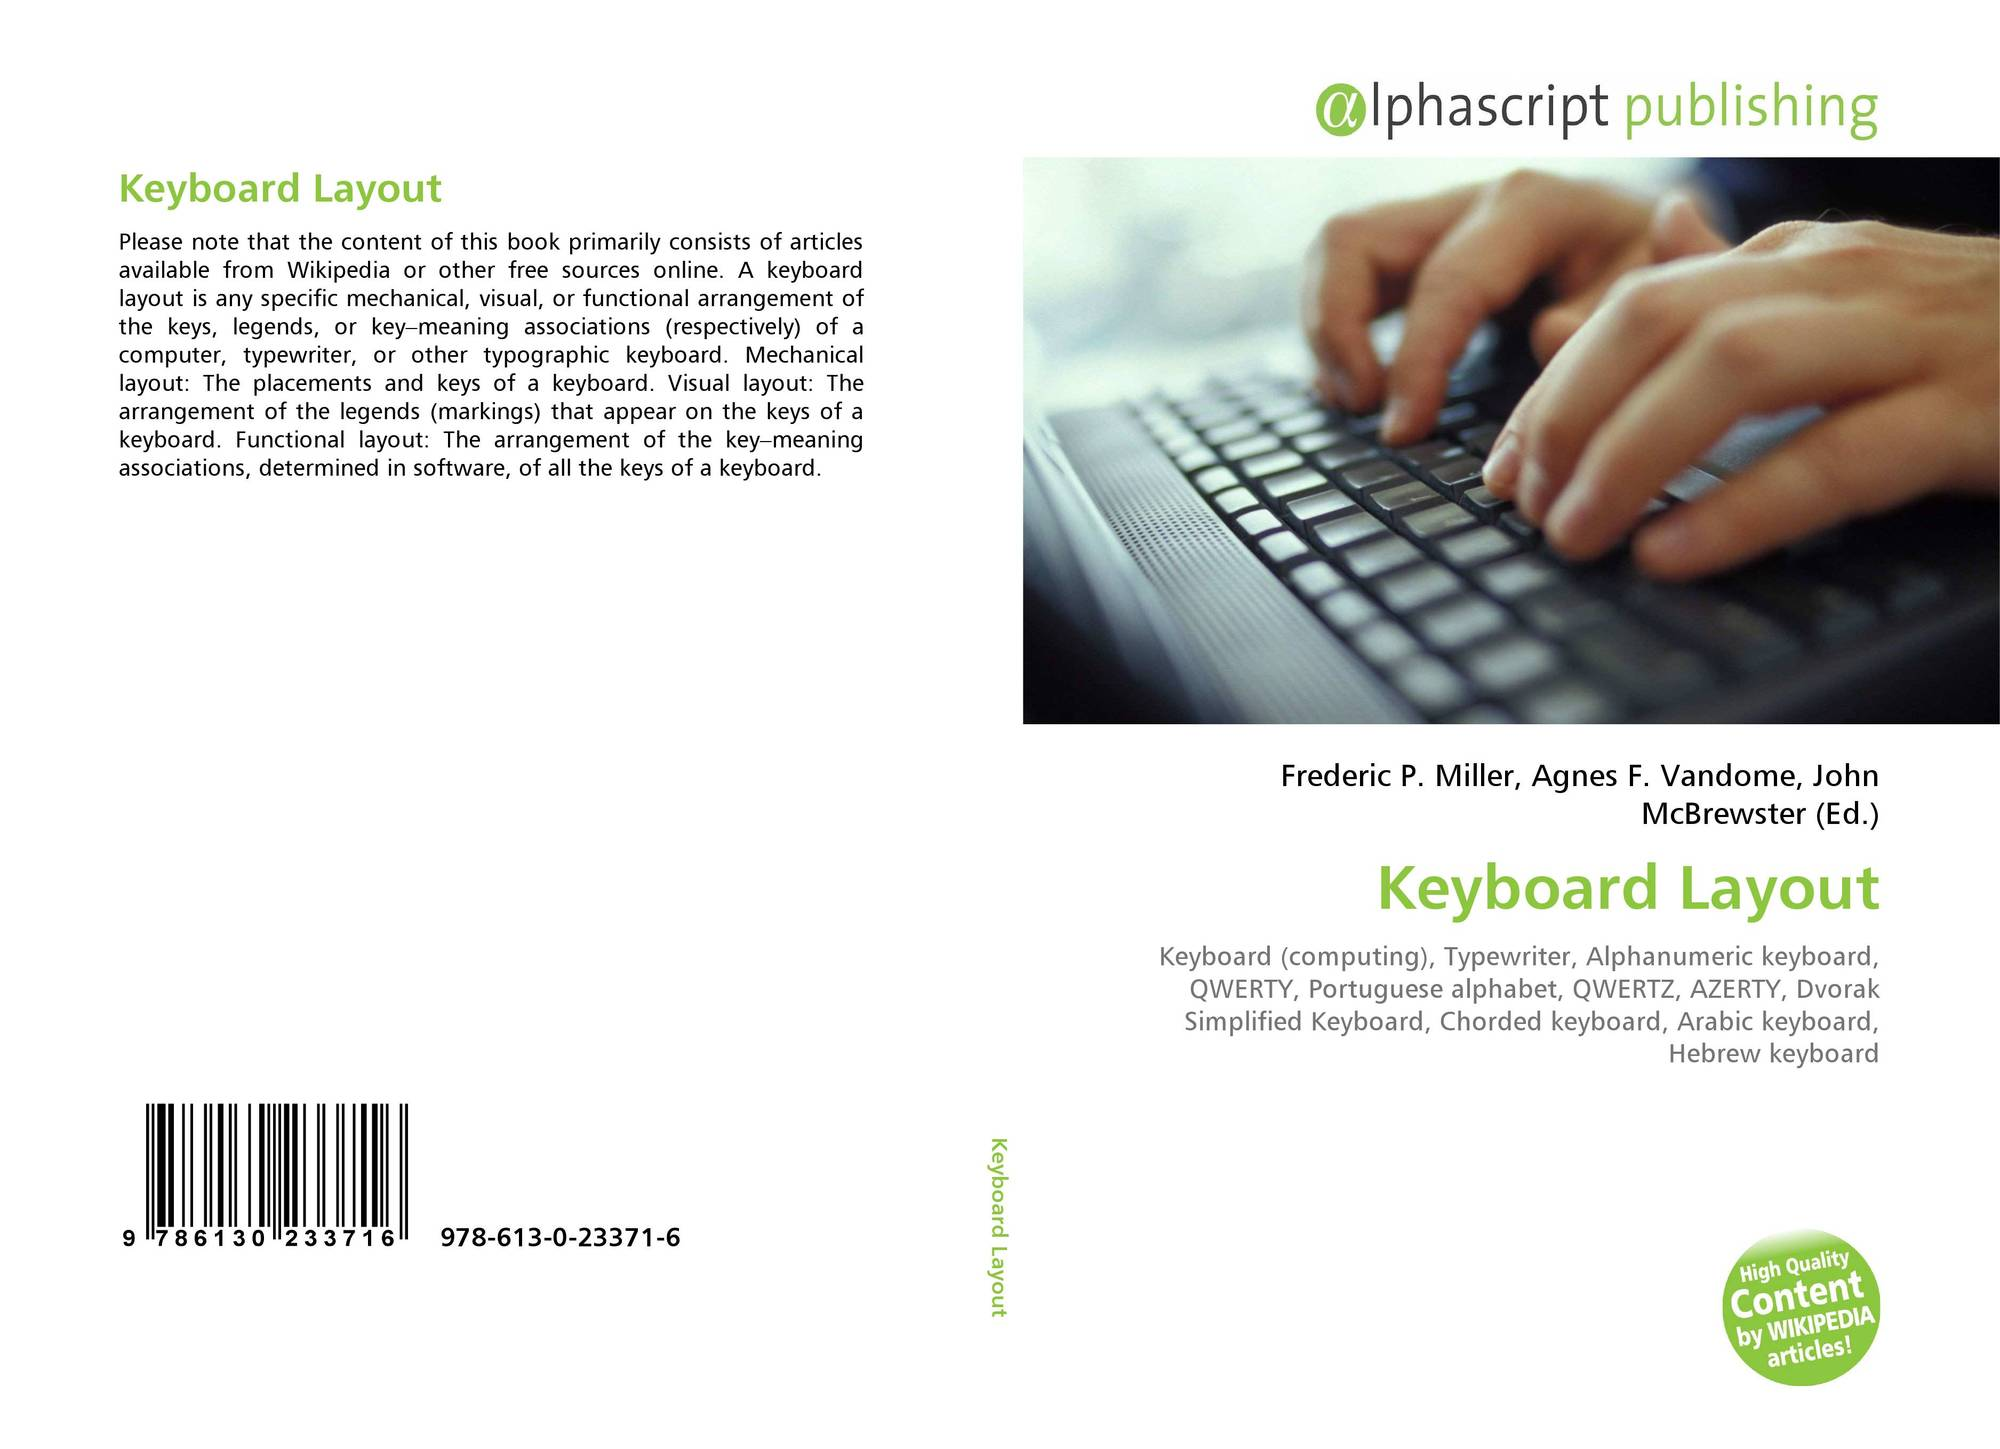 Keyboard Layout, 978-613-0-23371-6, 613023371X ,9786130233716